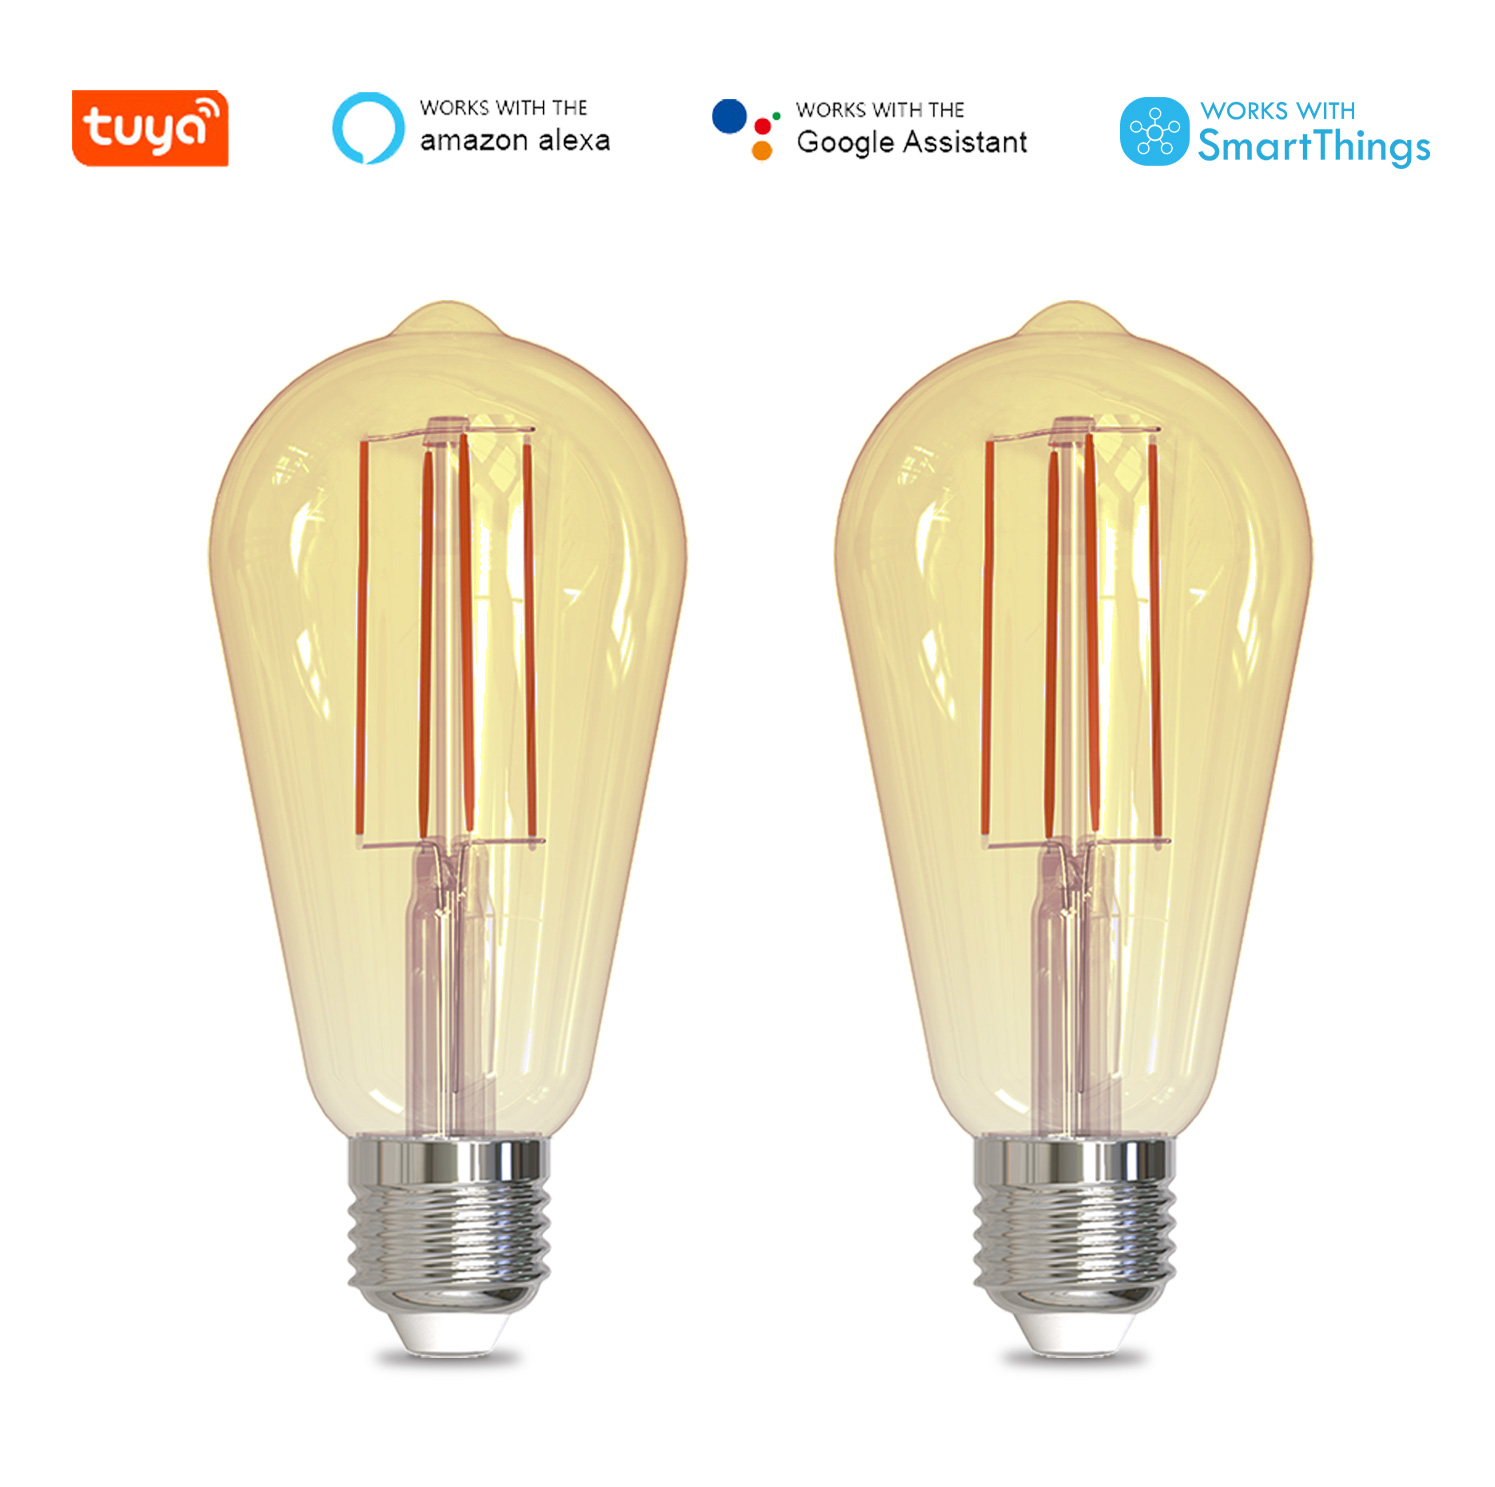 Tuya 2 Pack ST64 Smart WiFi LED Filament Bulb E27 Dimmable Light Lamp Dual Color APP Remote Control Work with Alexa Google